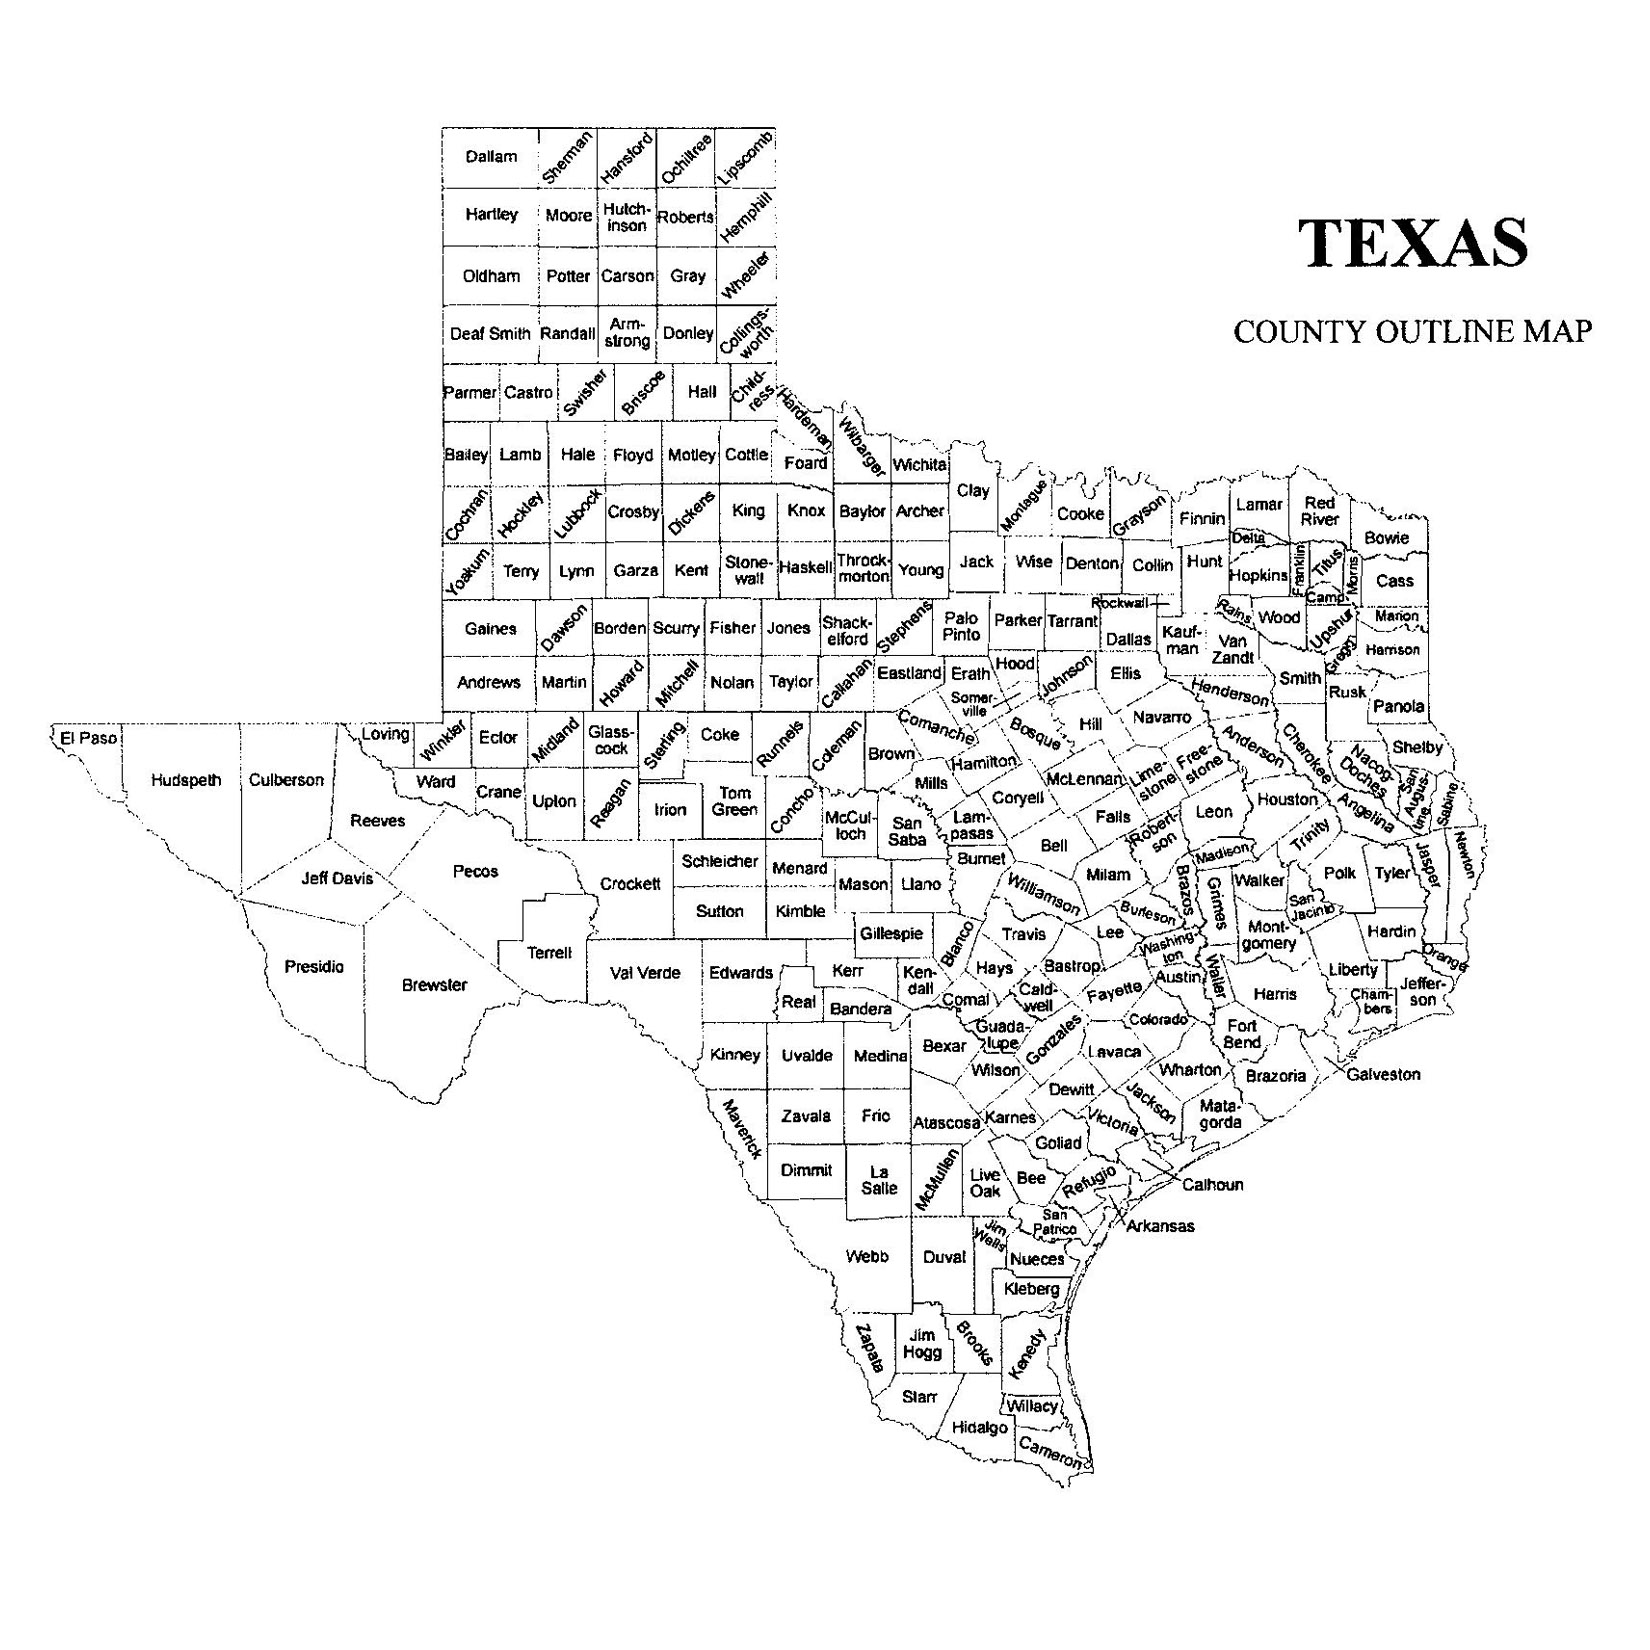 Texas County Map JigsawGenealogy - Texas county map